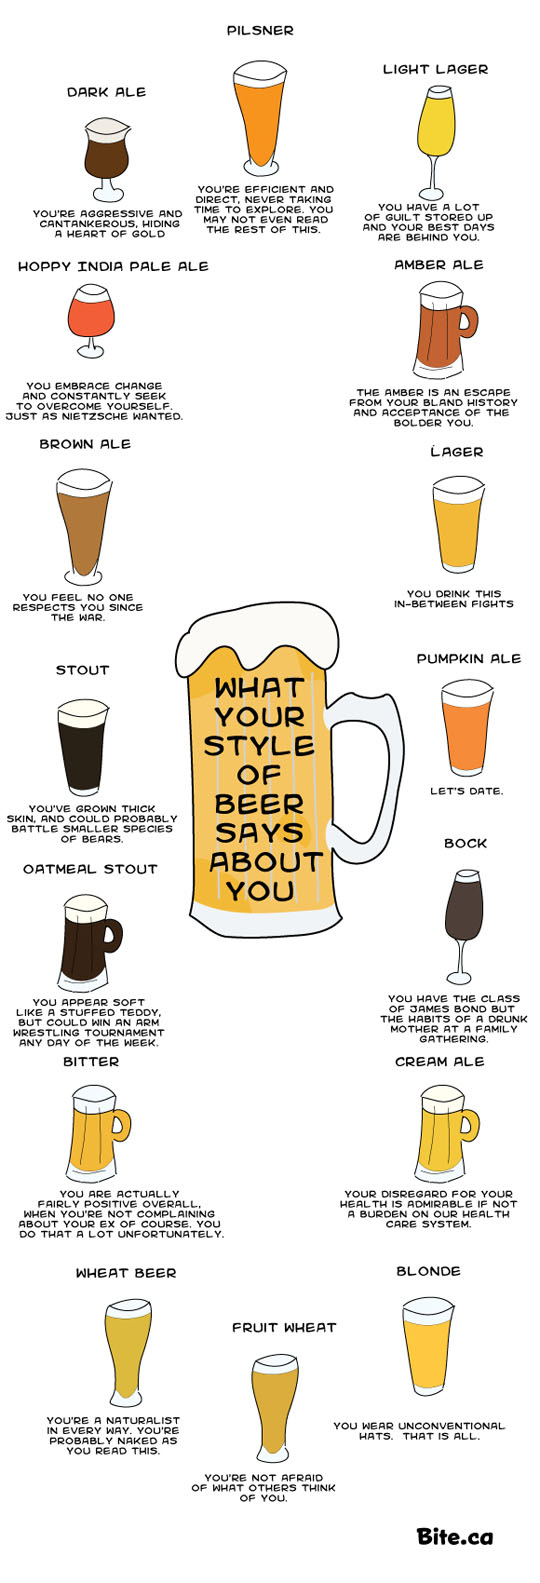 and great to decide where you fall within the beer personality scale